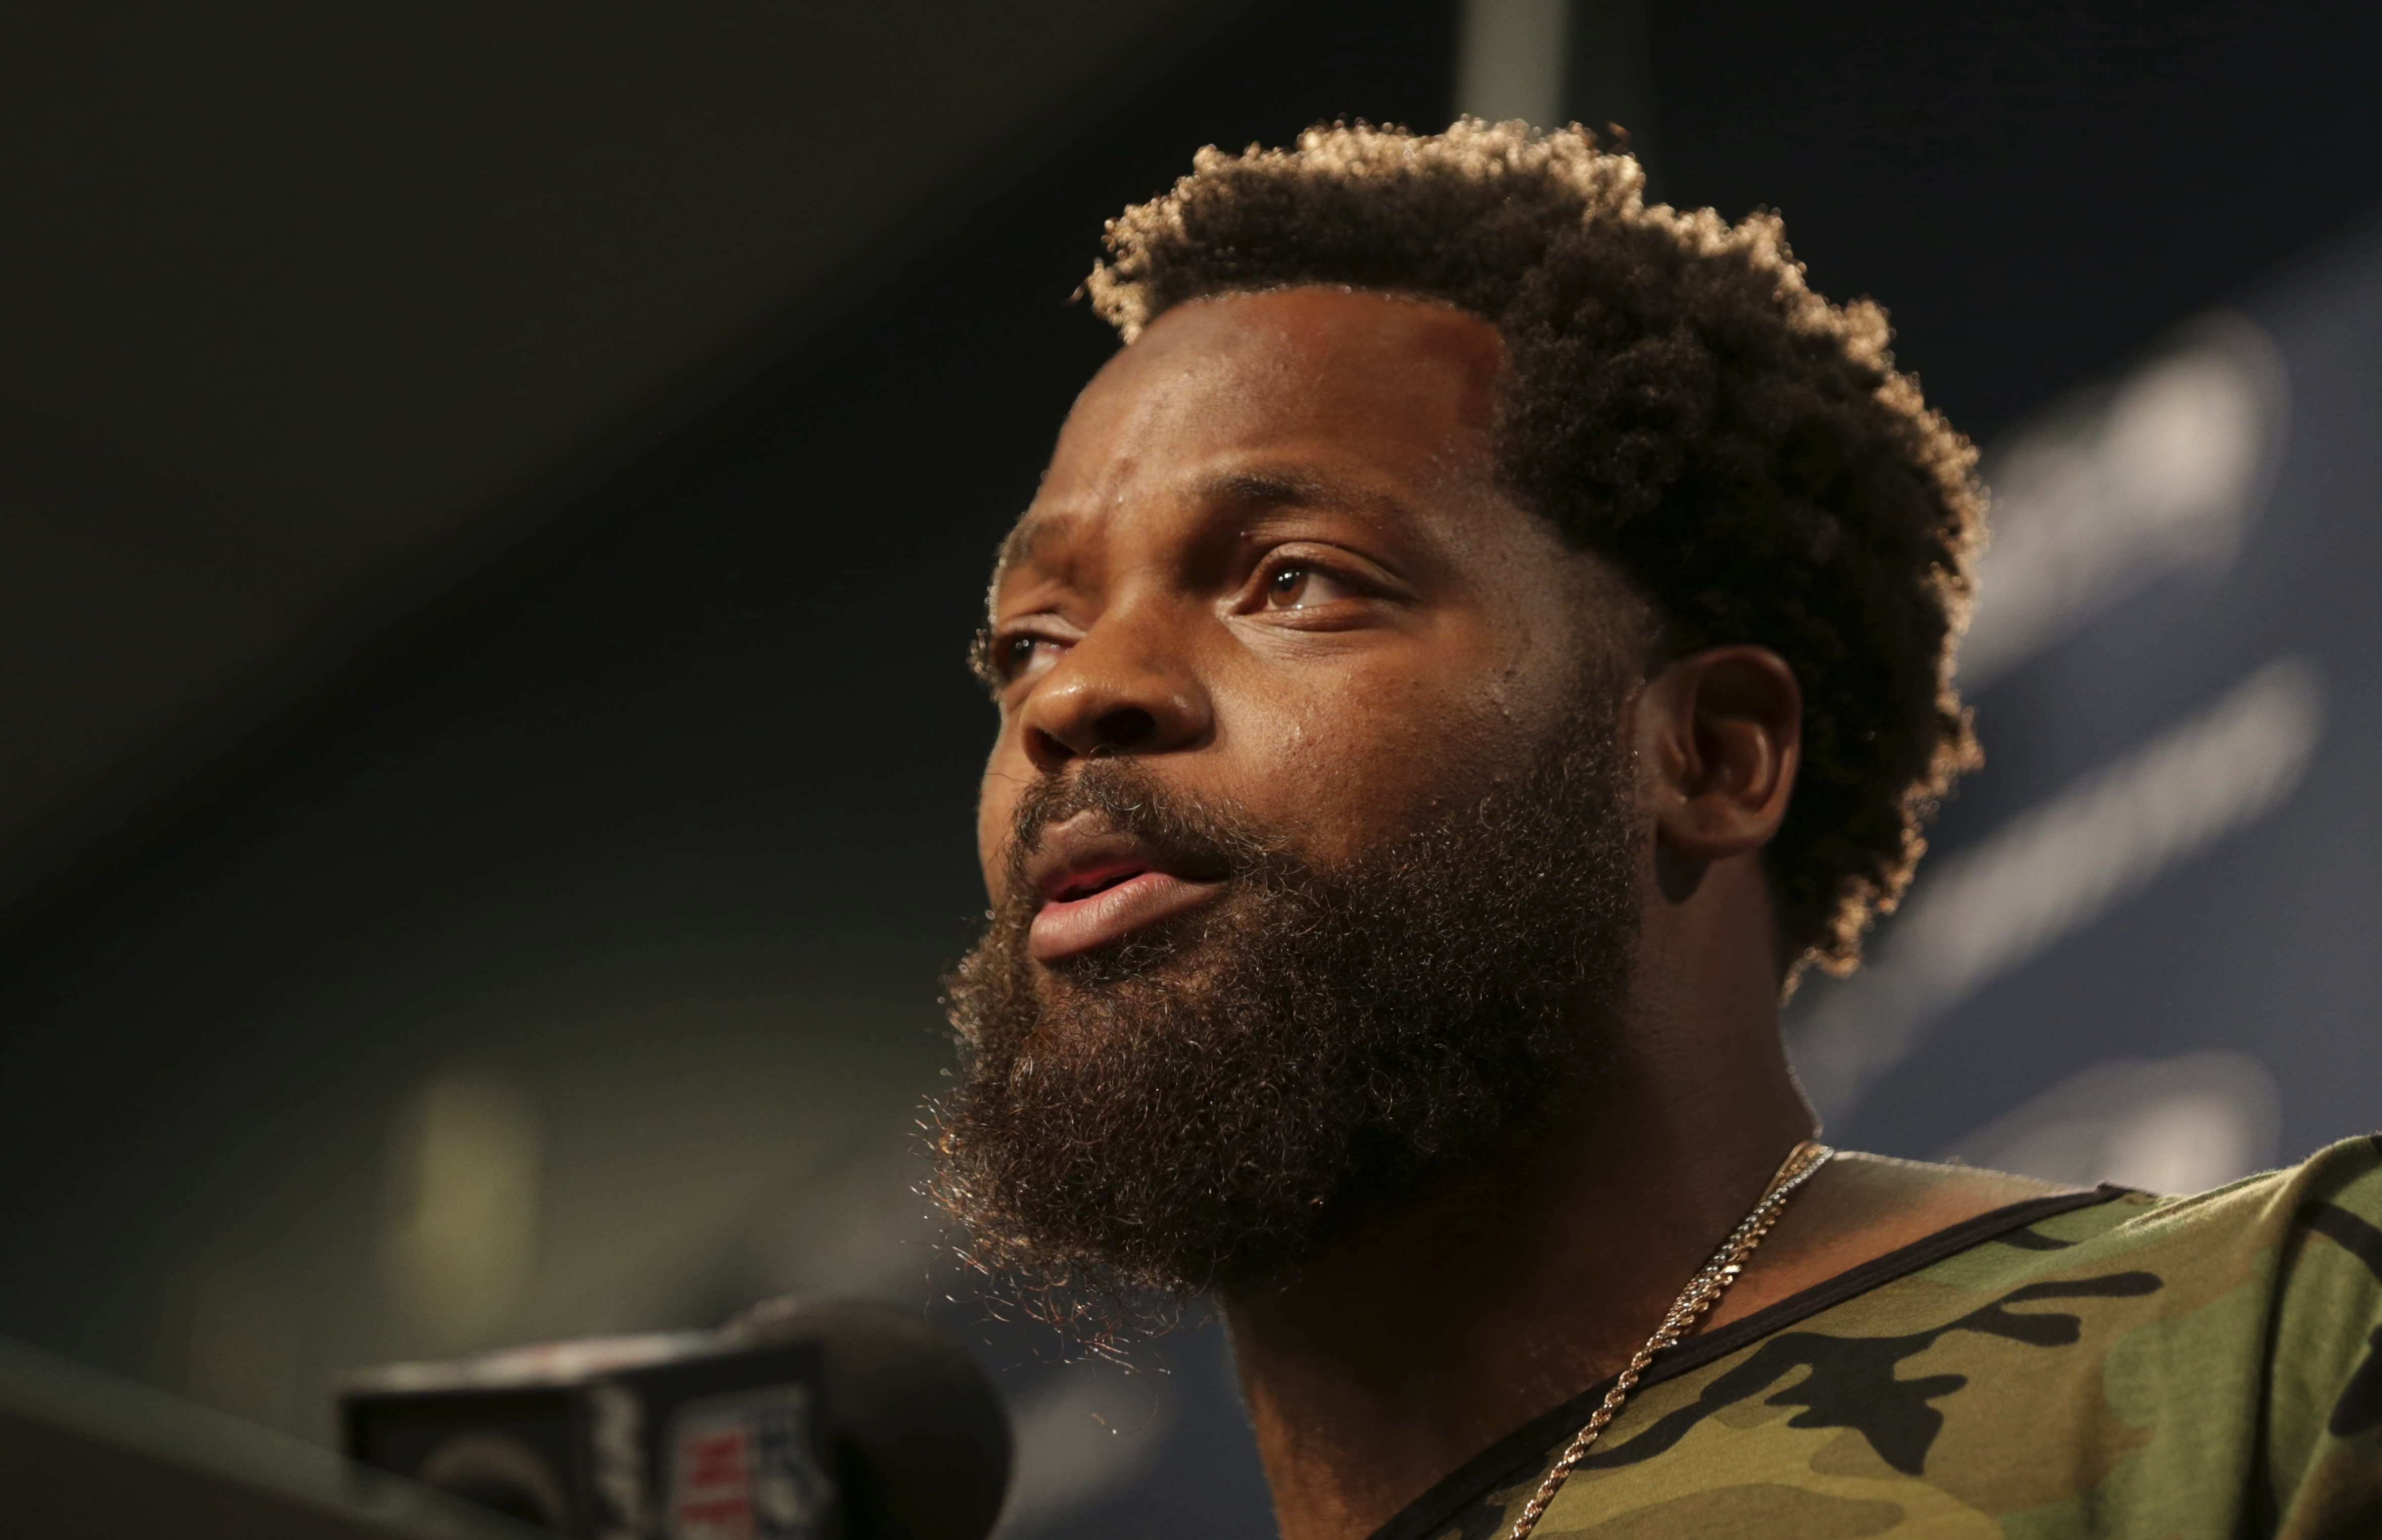 Michael Bennett incident brings change in tone from Roger Goodell